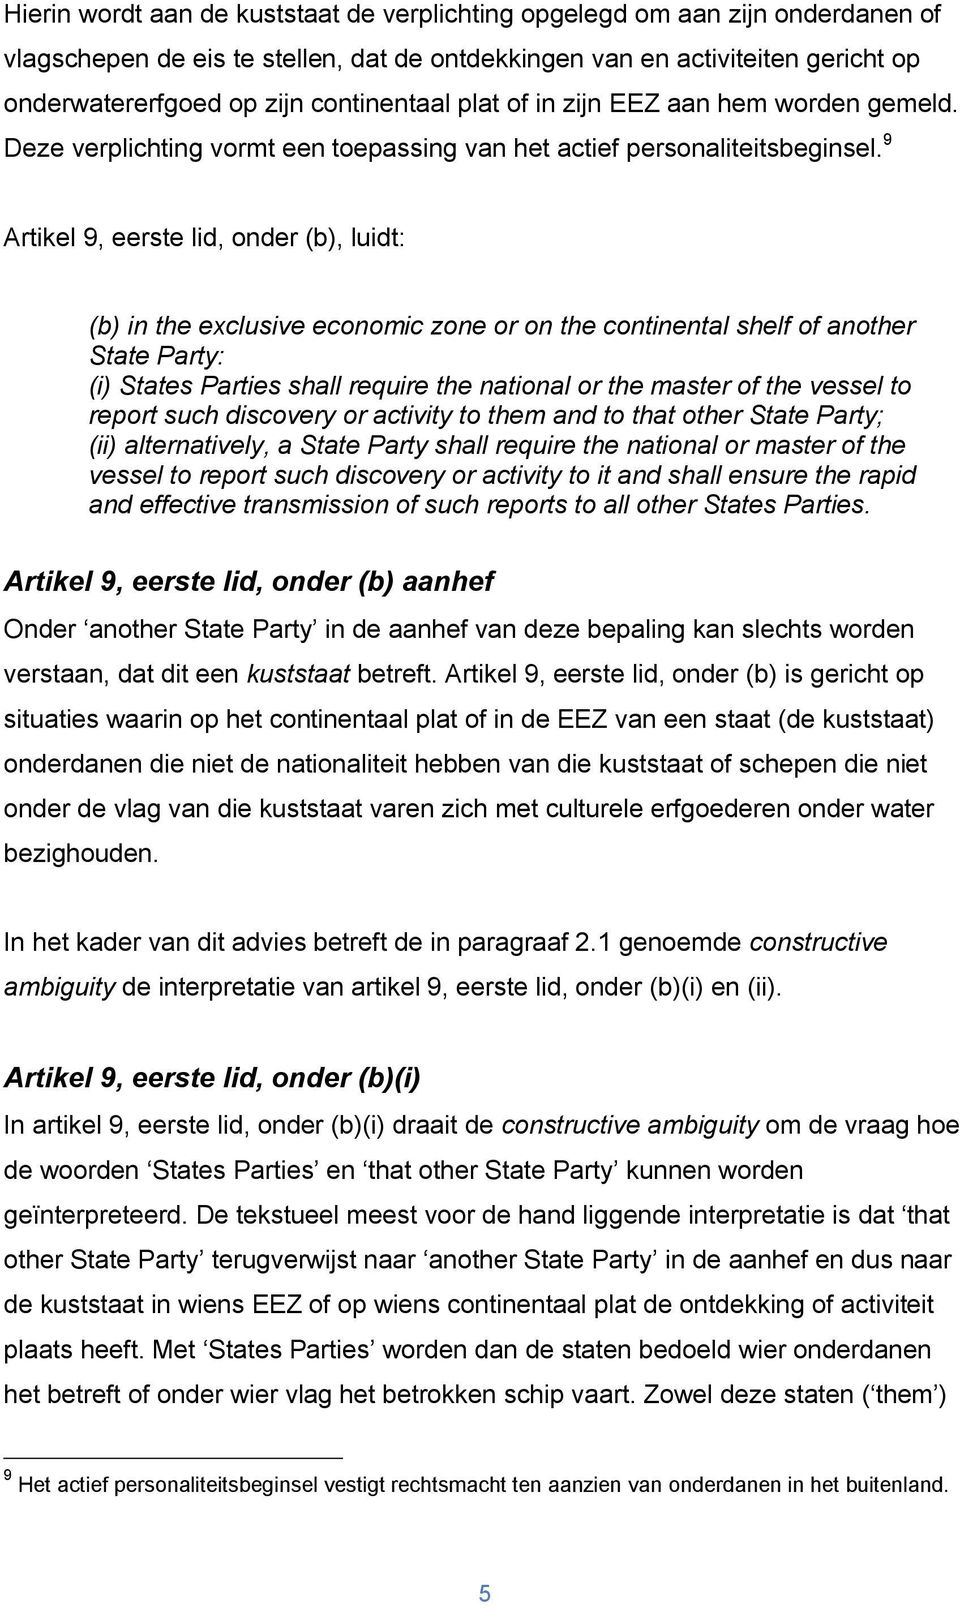 9 Artikel 9, eerste lid, onder (b), luidt: (b) in the exclusive economic zone or on the continental shelf of another State Party: (i) States Parties shall require the national or the master of the